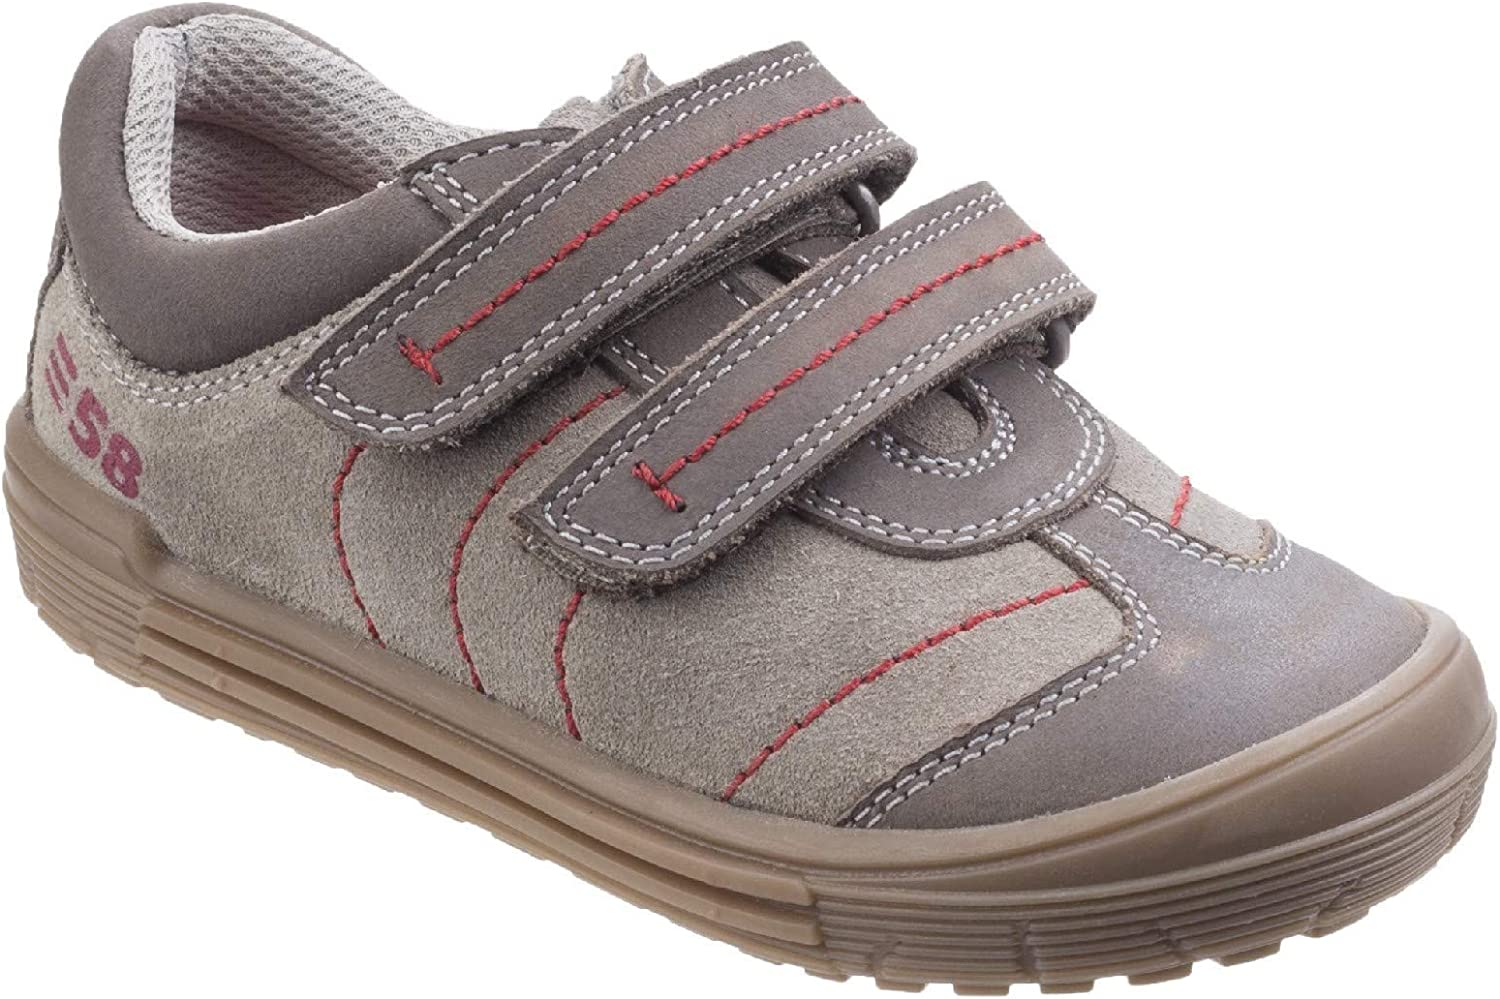 Hush Puppies Womens Finn Touch Fastening shoes Taupe Size UK 8 EU 25.5